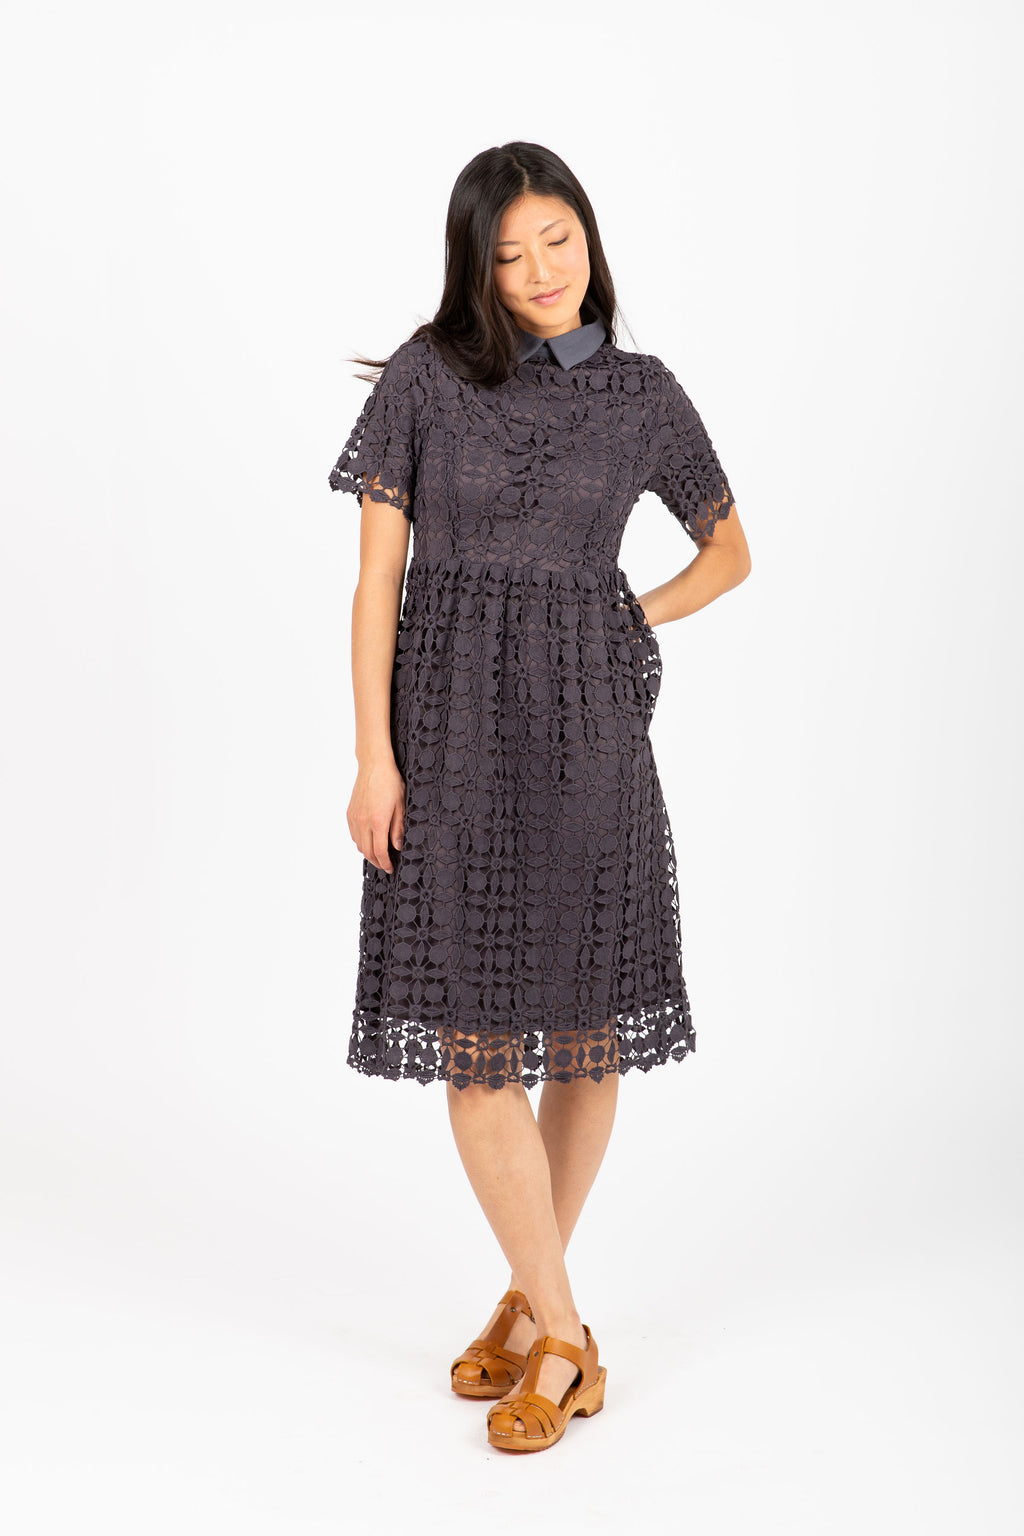 The Happening Collared Lace Dress in Slate